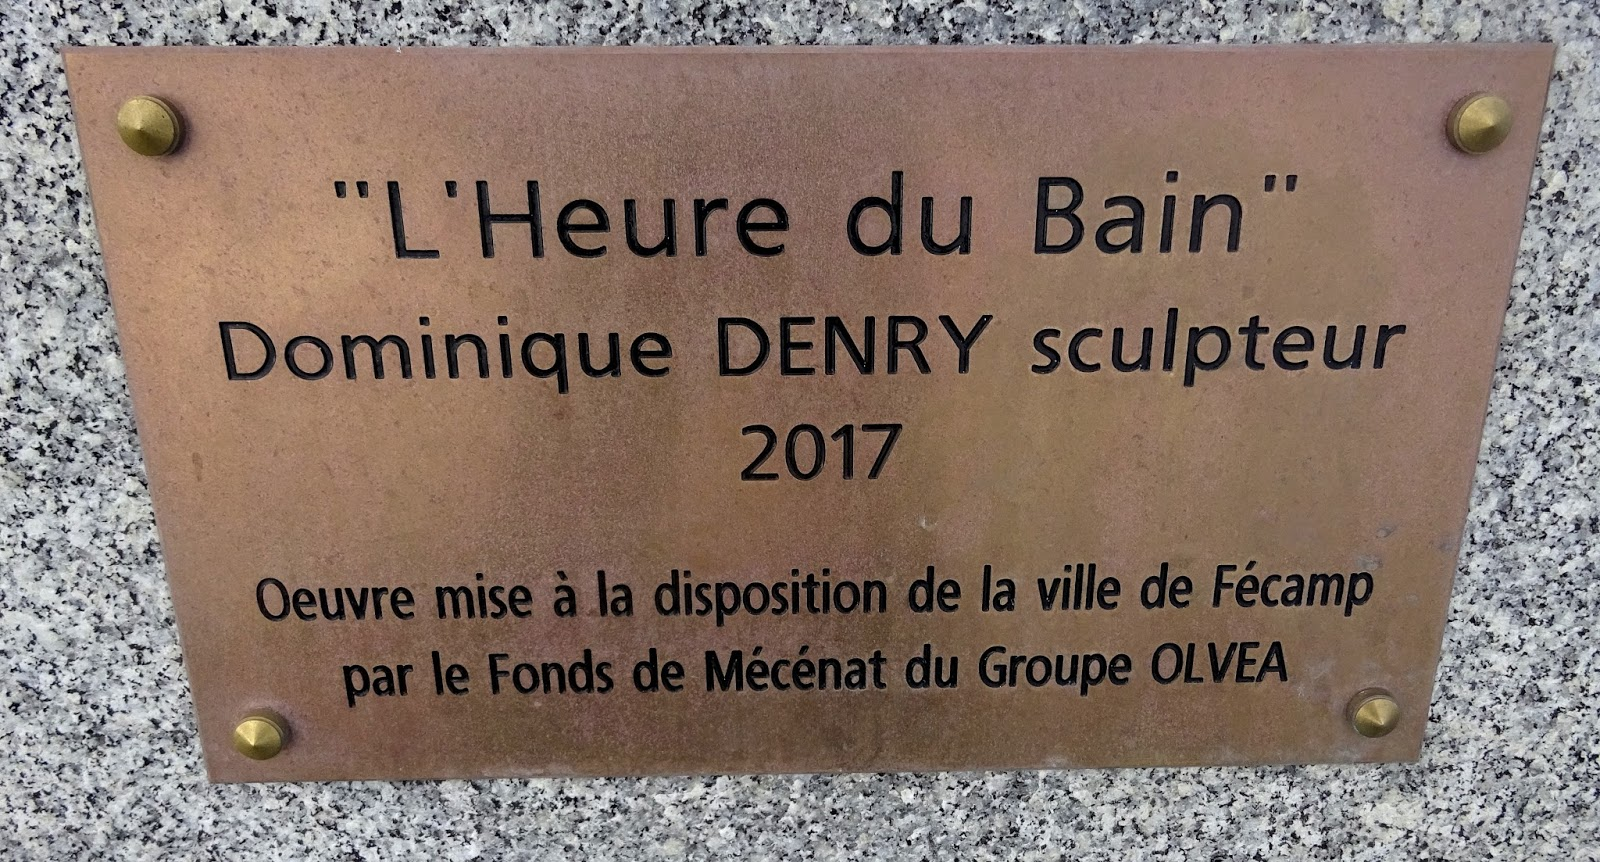 Dr Tony Shaw: Dominique Denry in Fécamp (76), Seine-Maritime (76)